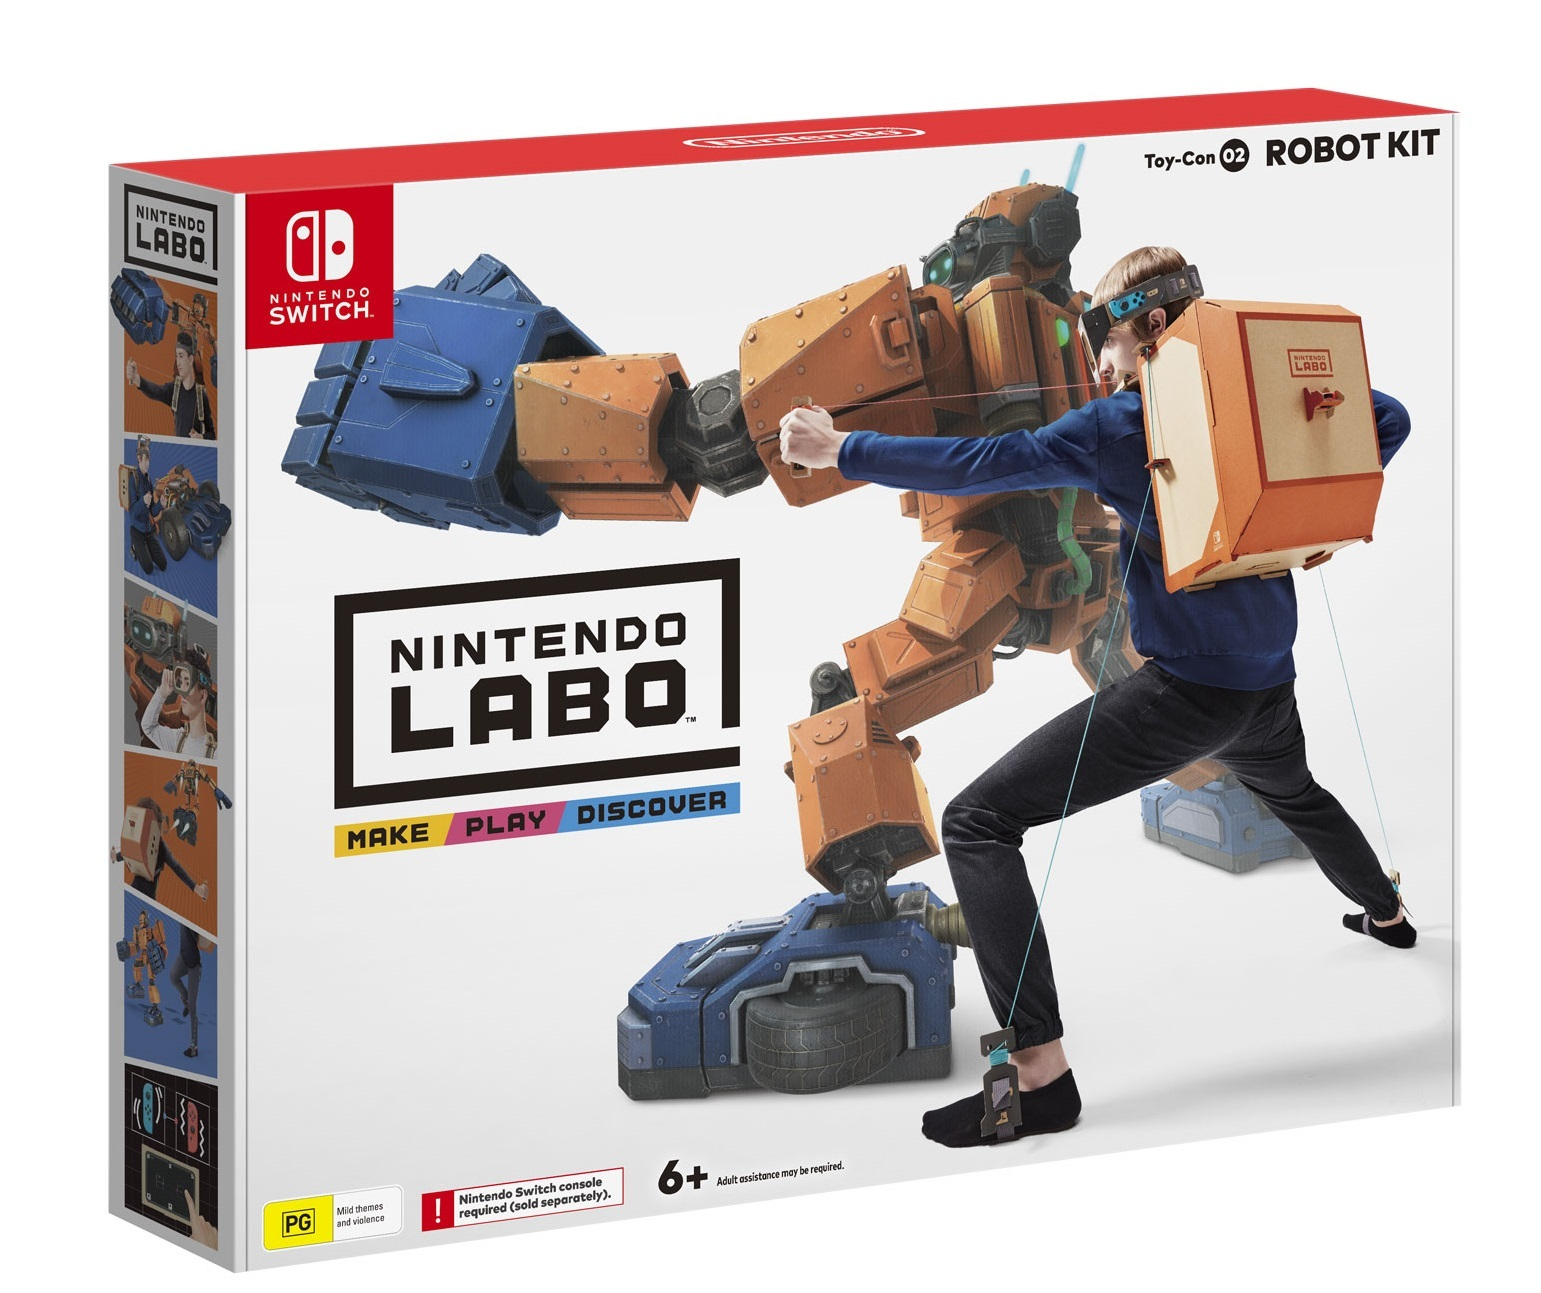 Nintendo Labo Toy-Con 02 Robot Kit for Switch image